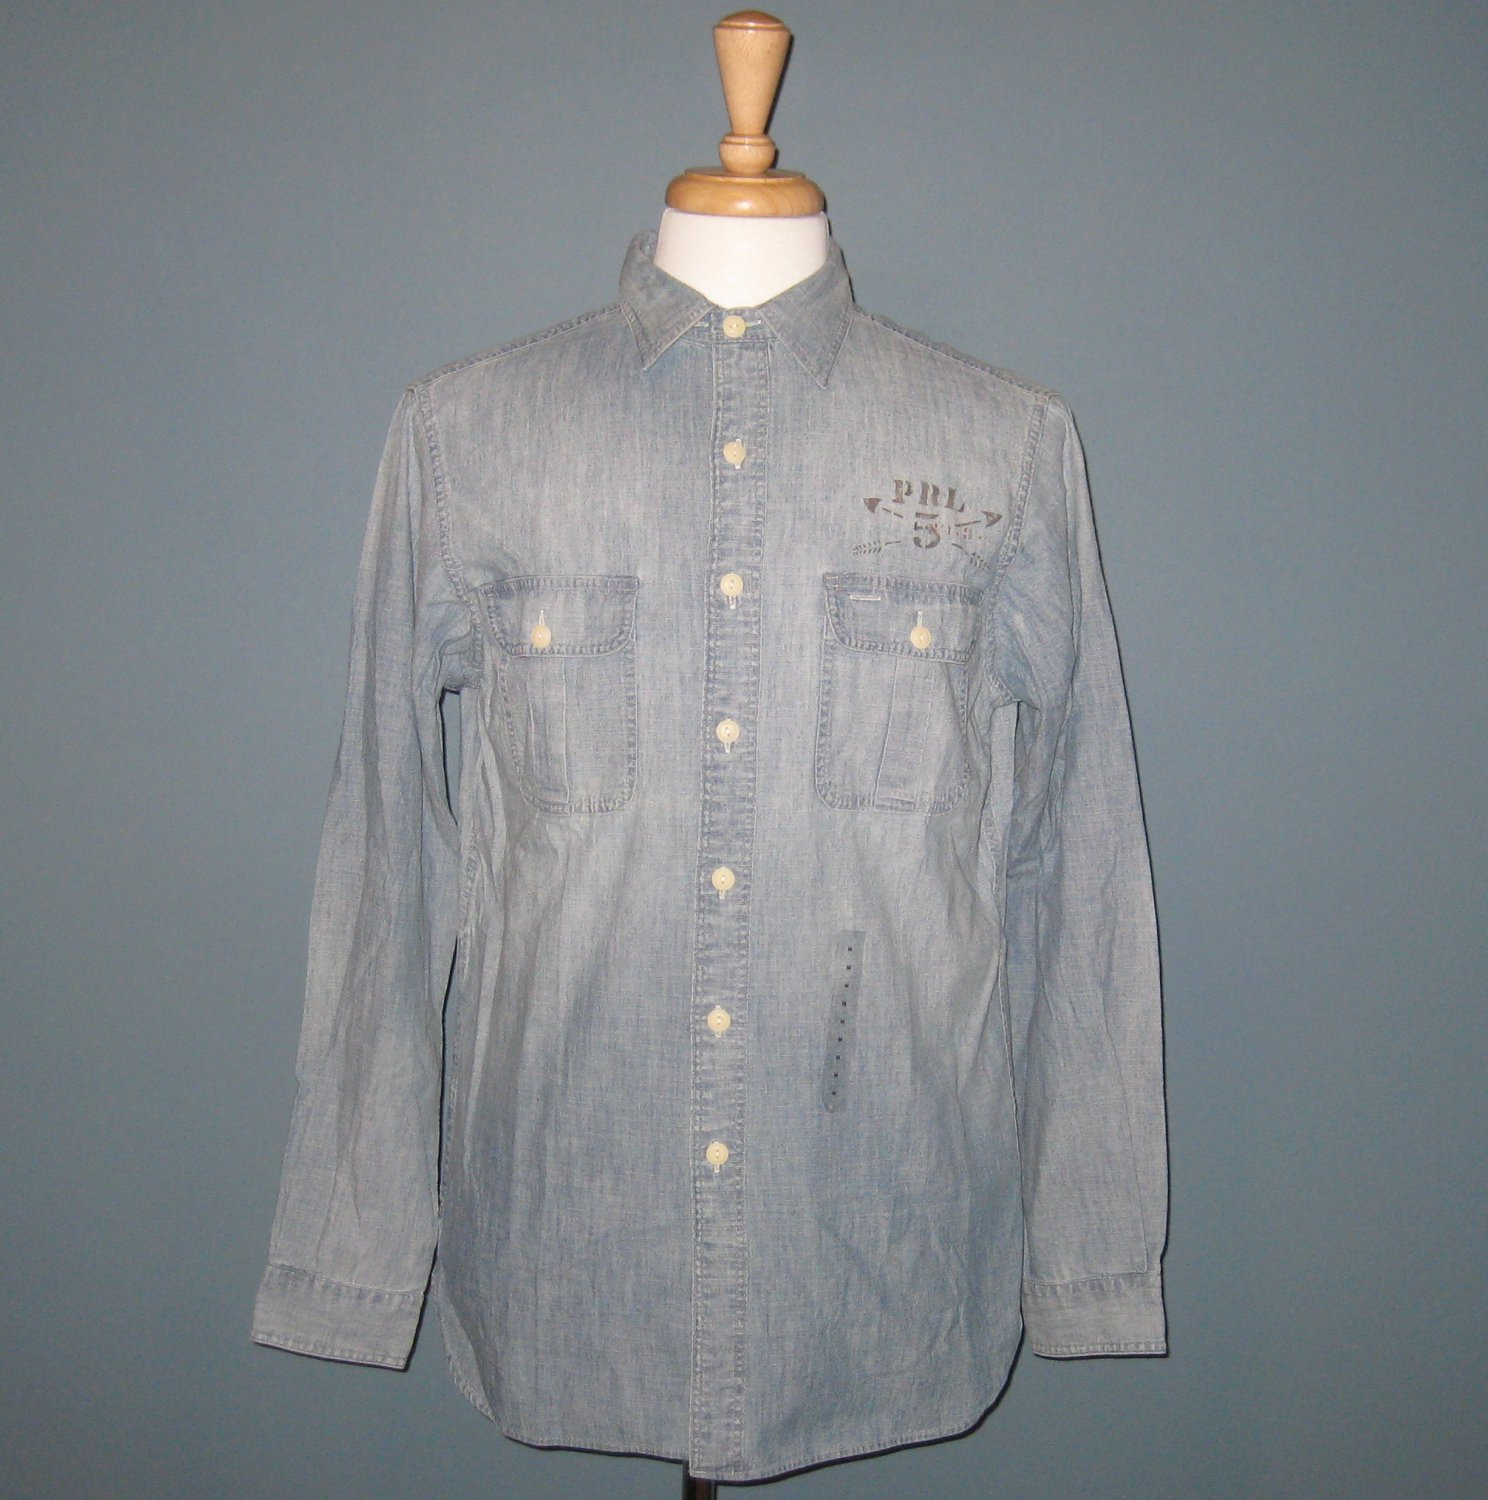 NWT Polo Ralph Lauren 100% Cotton Denim Chambray Shirt - M